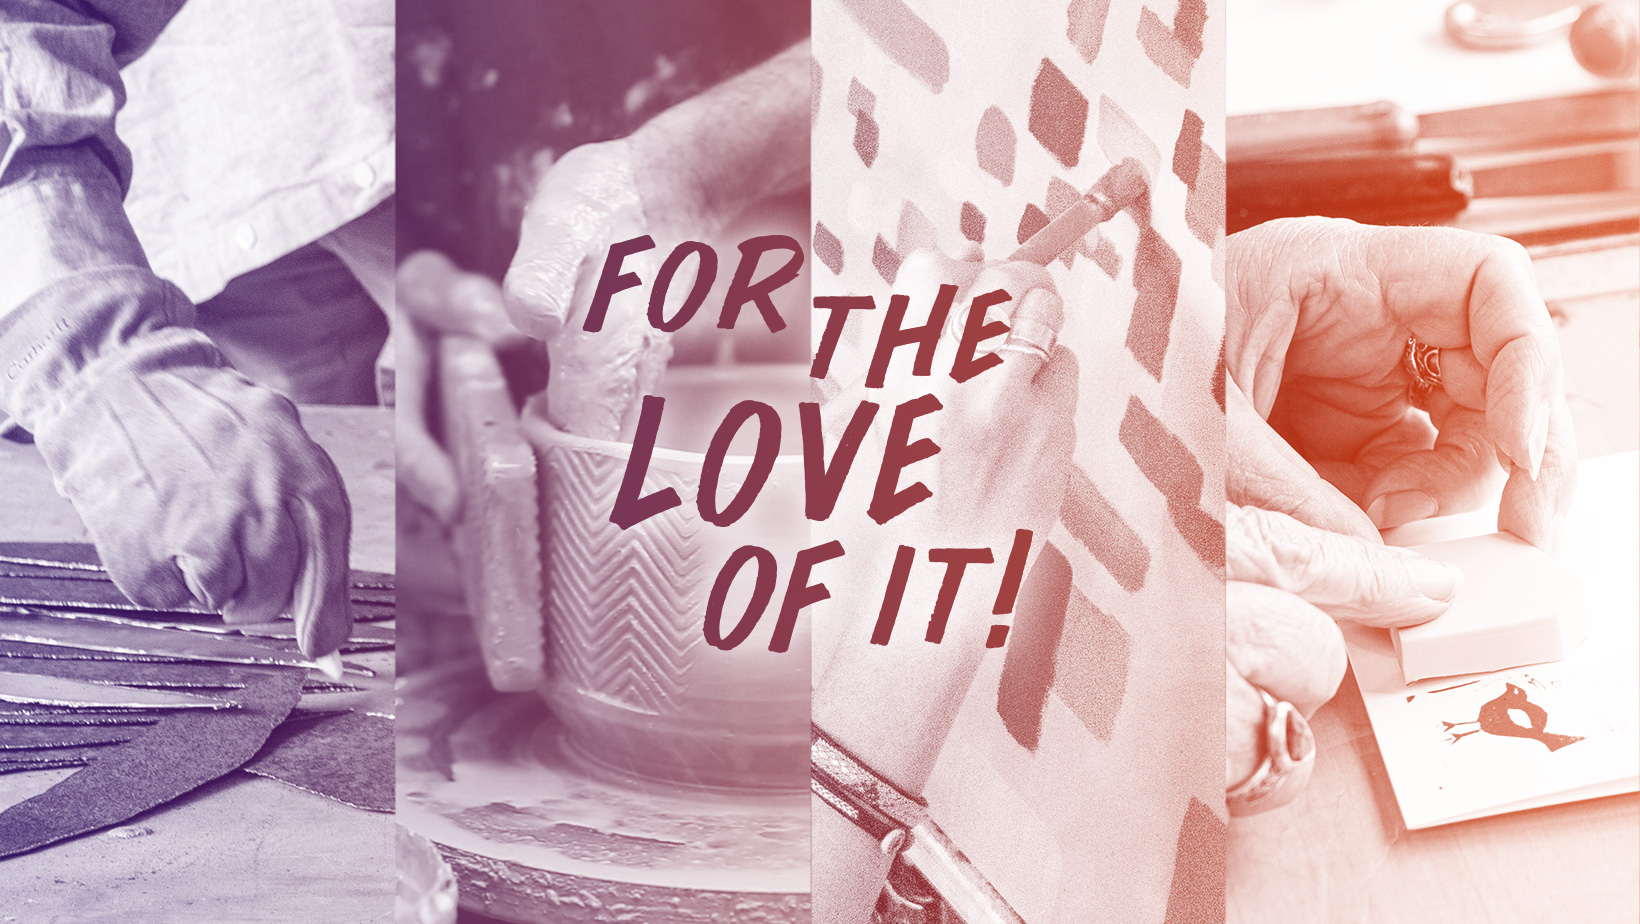 For the Love of it! A conference happening March 6 – 8h